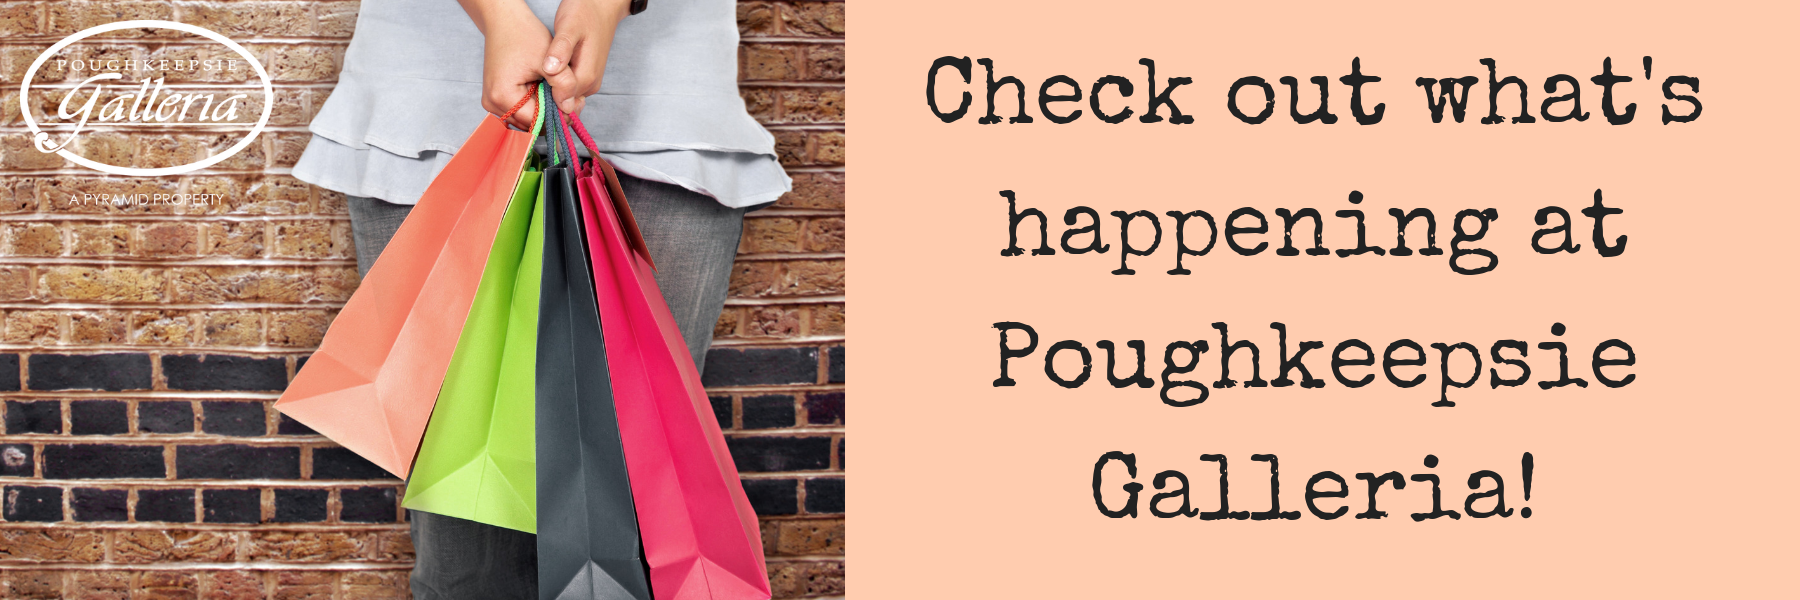 Check out what's happening this weekend at Poughkeepsie Galleria!